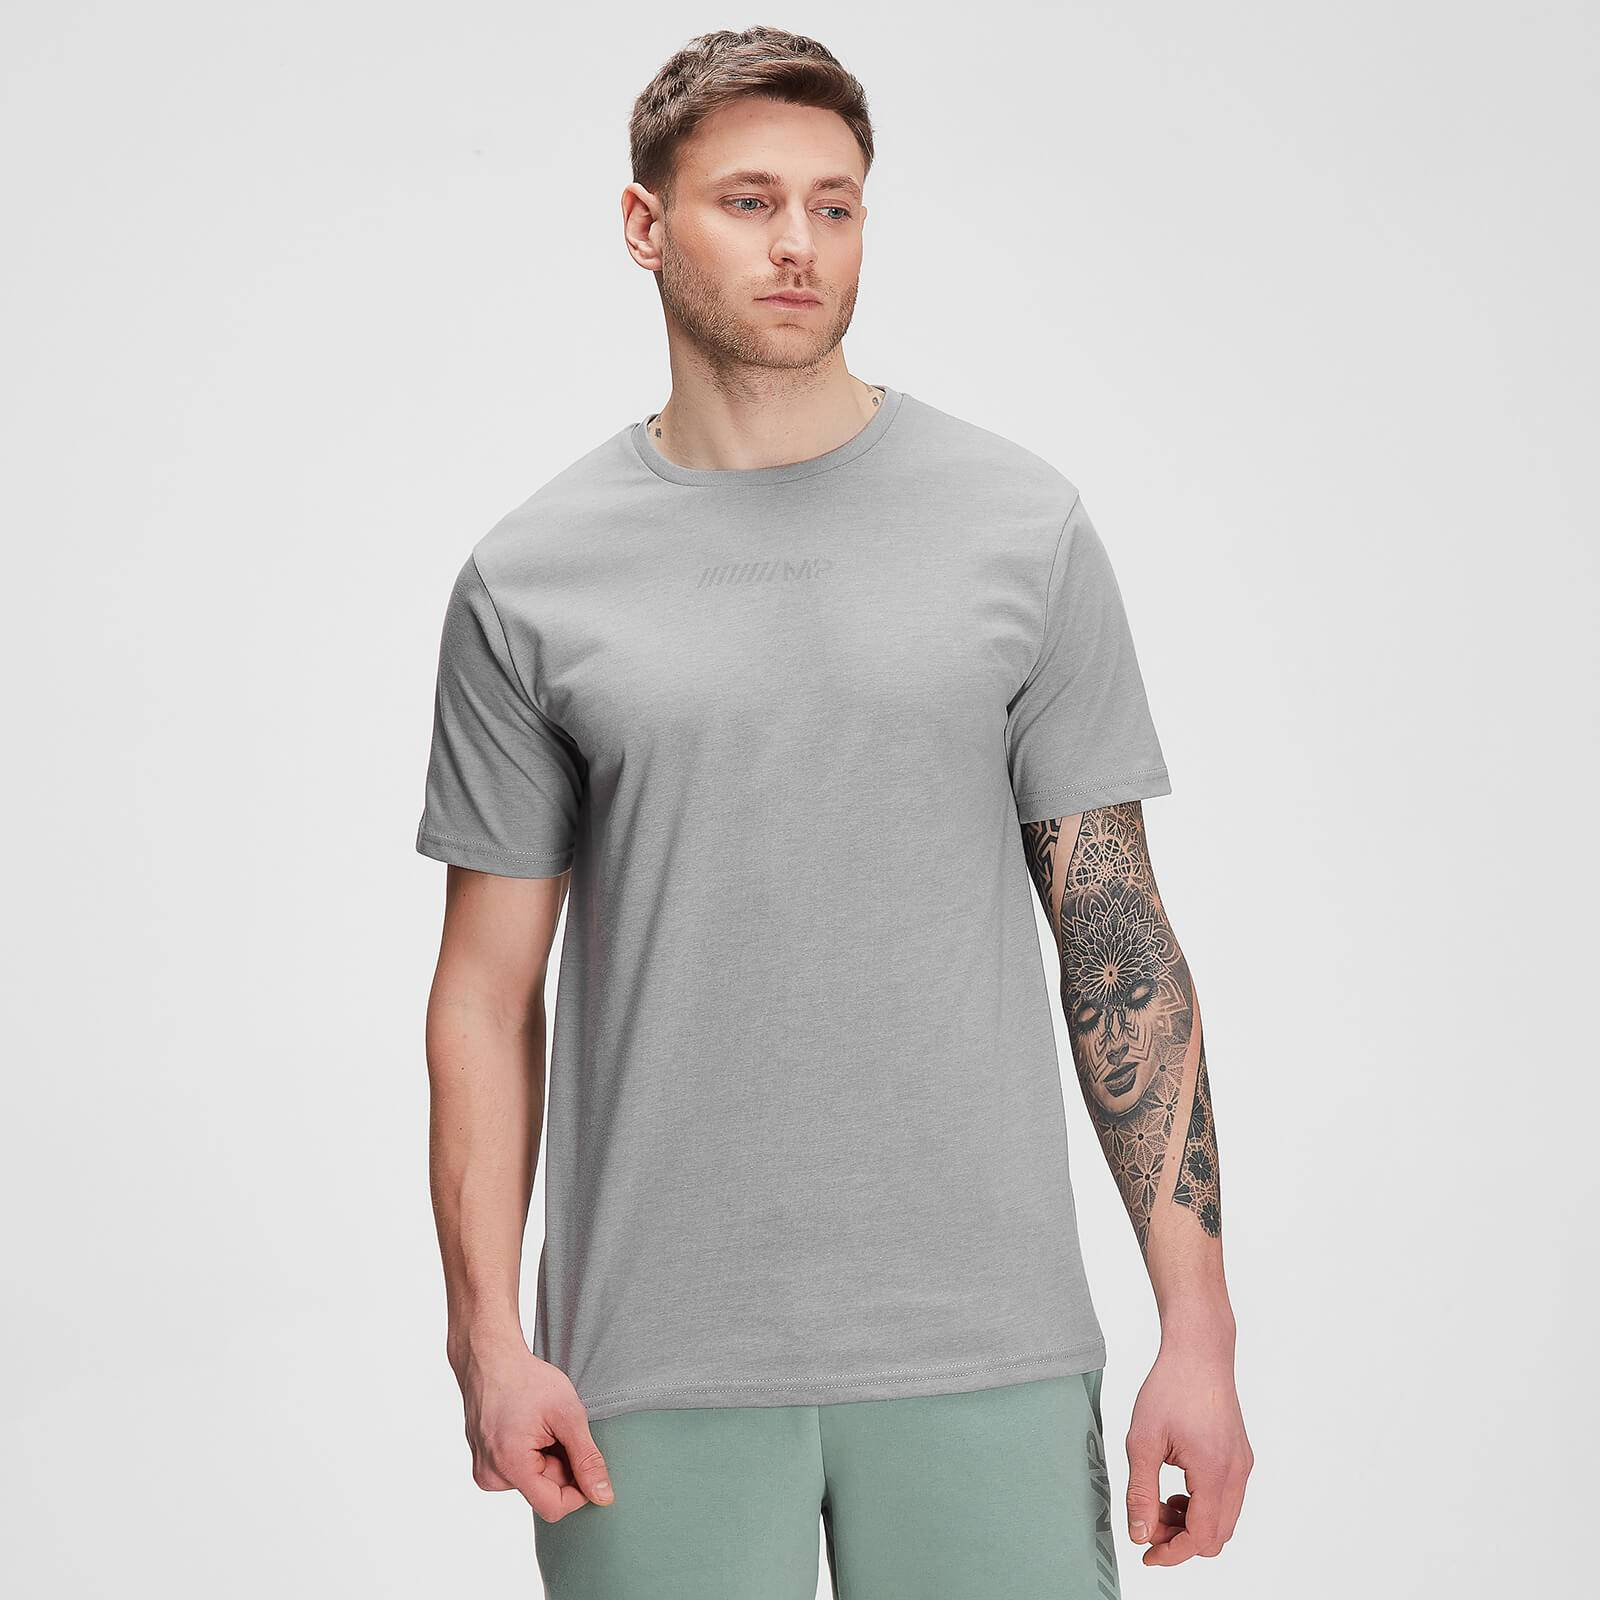 Mp Men's Tonal Graphic Short Sleeve T-shirt – Storm Grey Marl - XXS